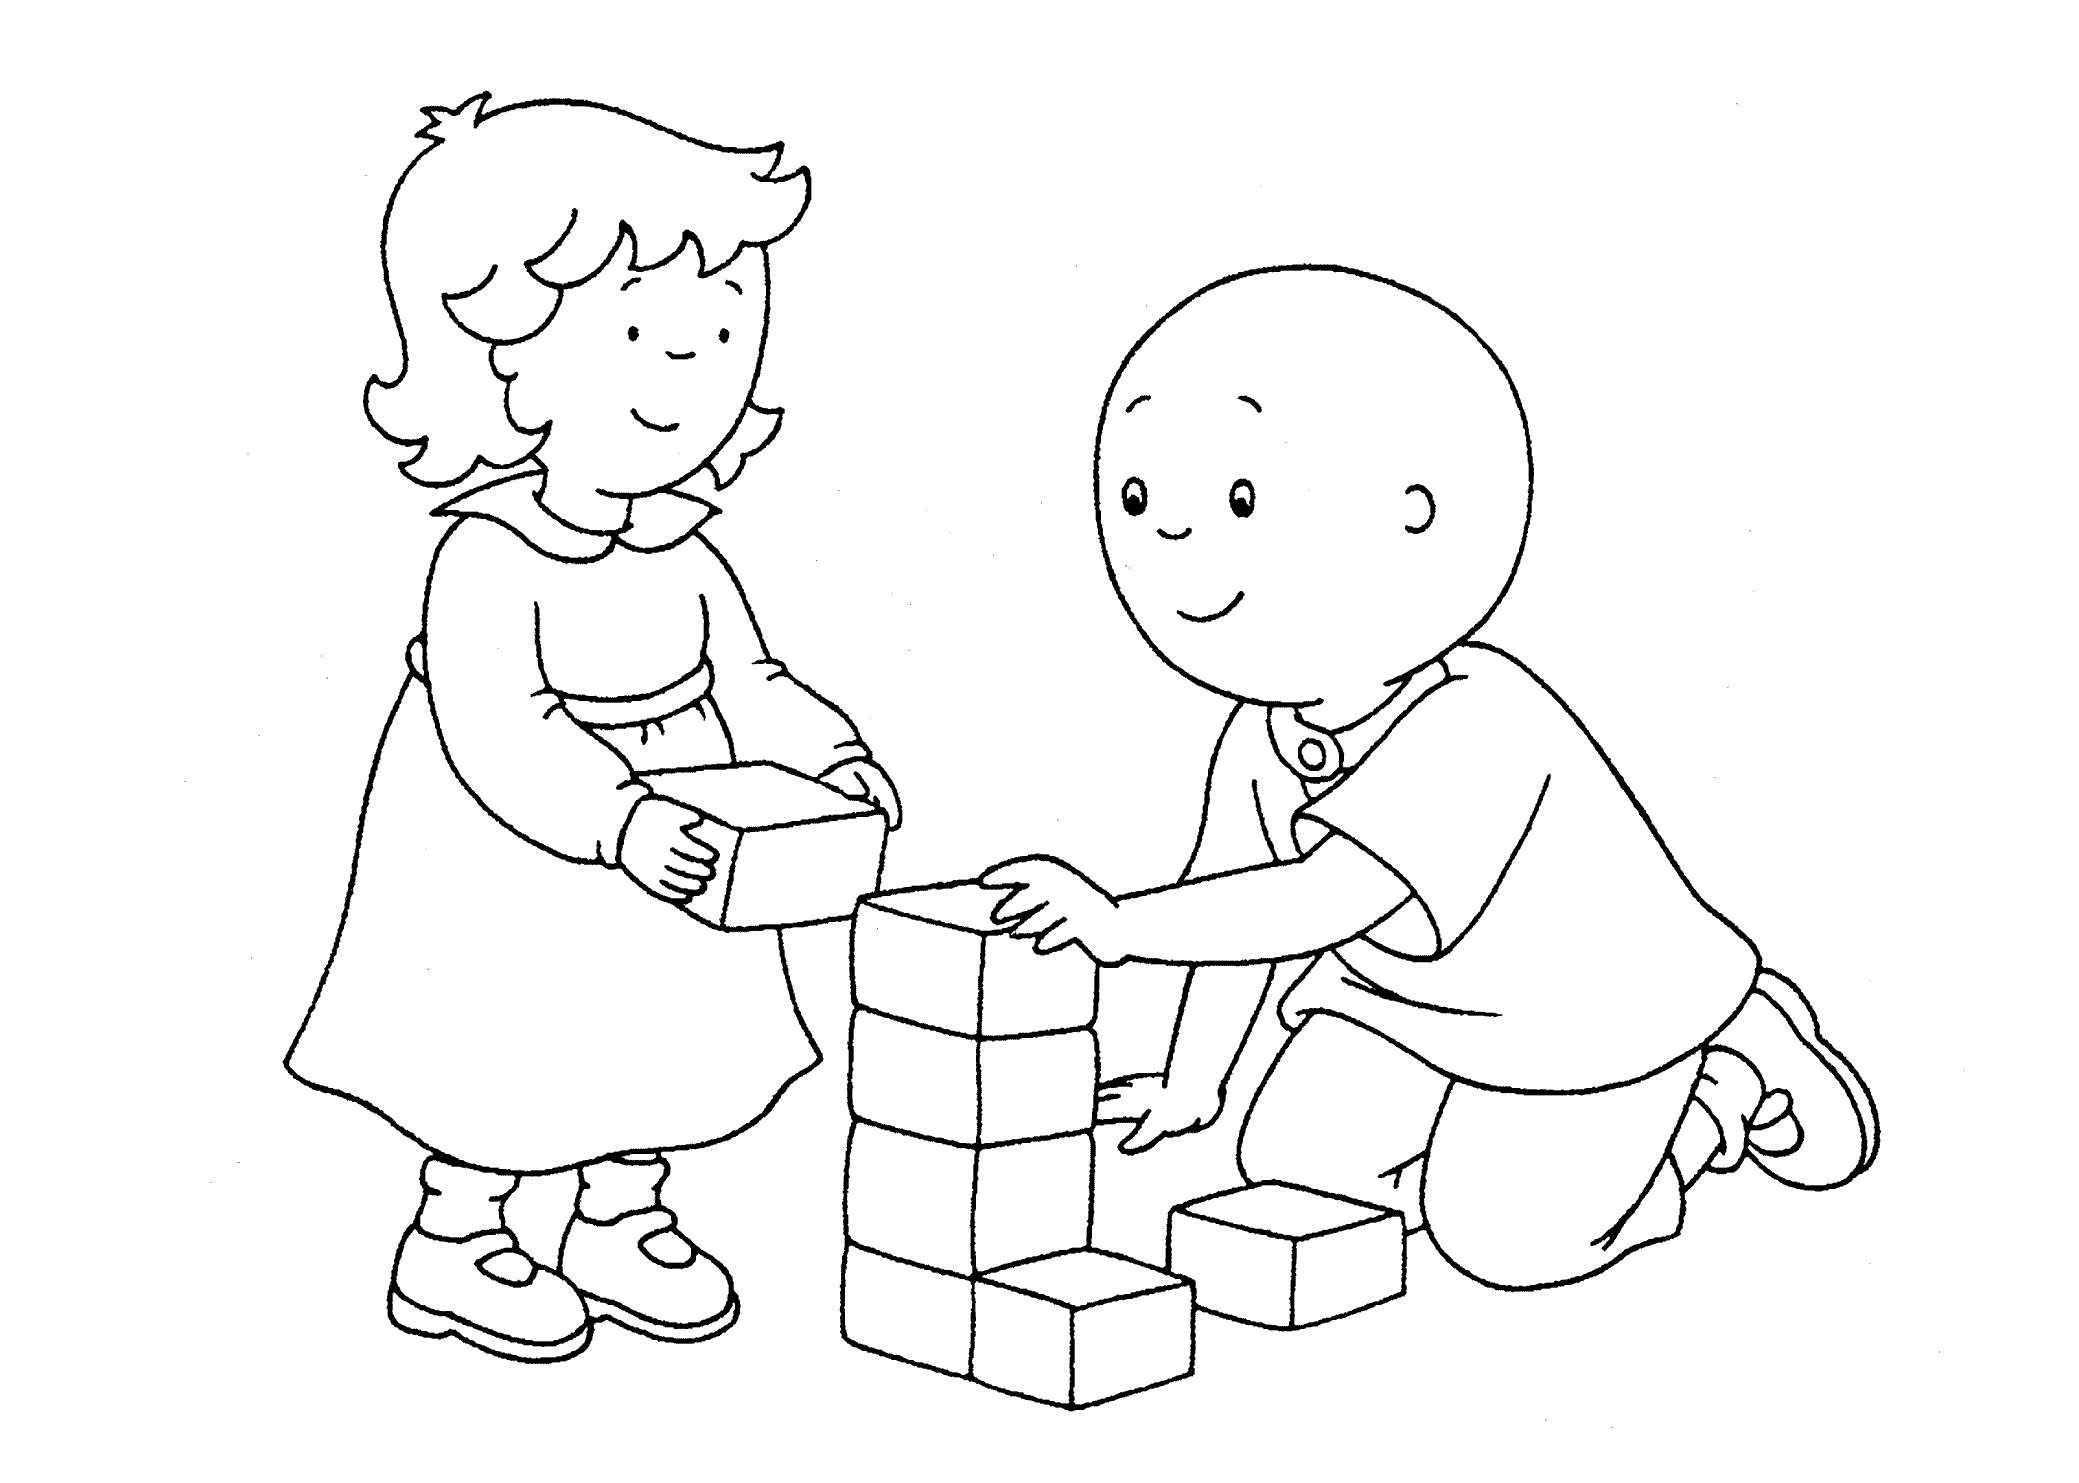 2079x1483 Caillou Printable Coloring Pages Caillou Coloring Pages